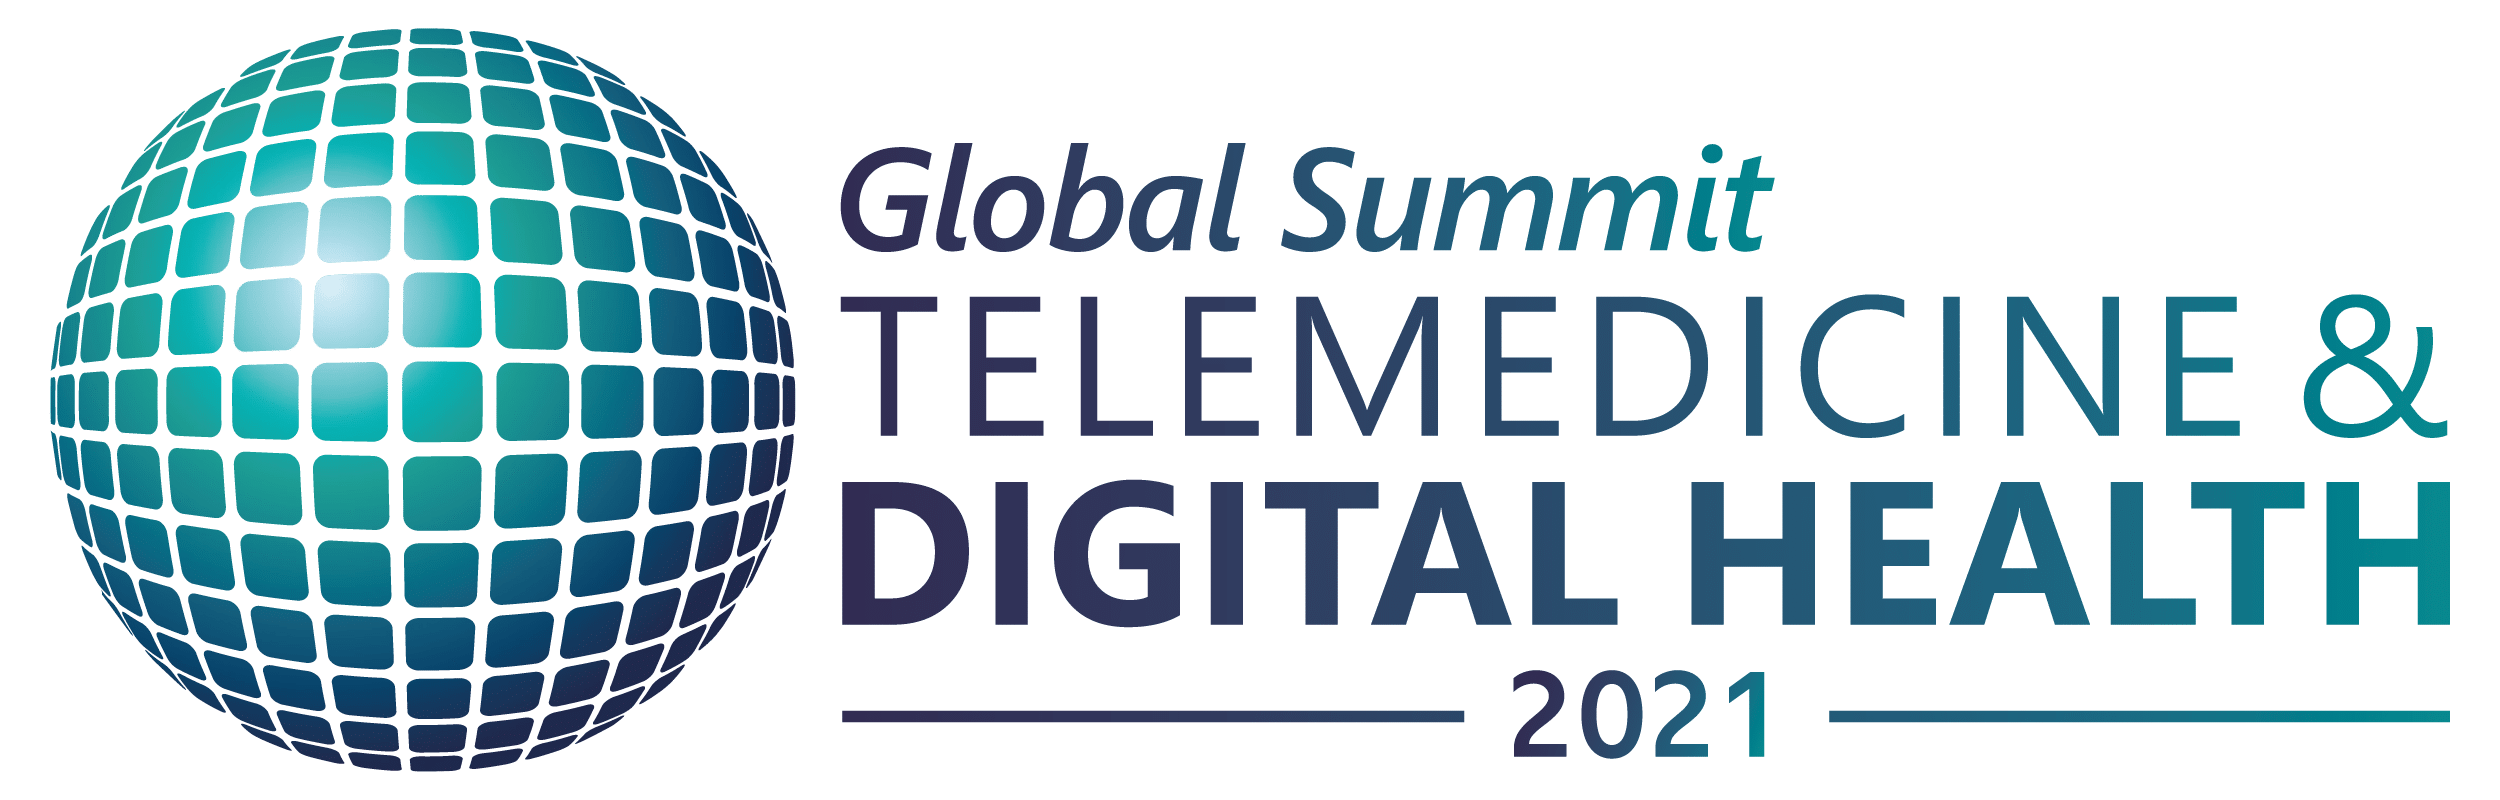 Global Summit 2021 | Telemedicine & Digital Health